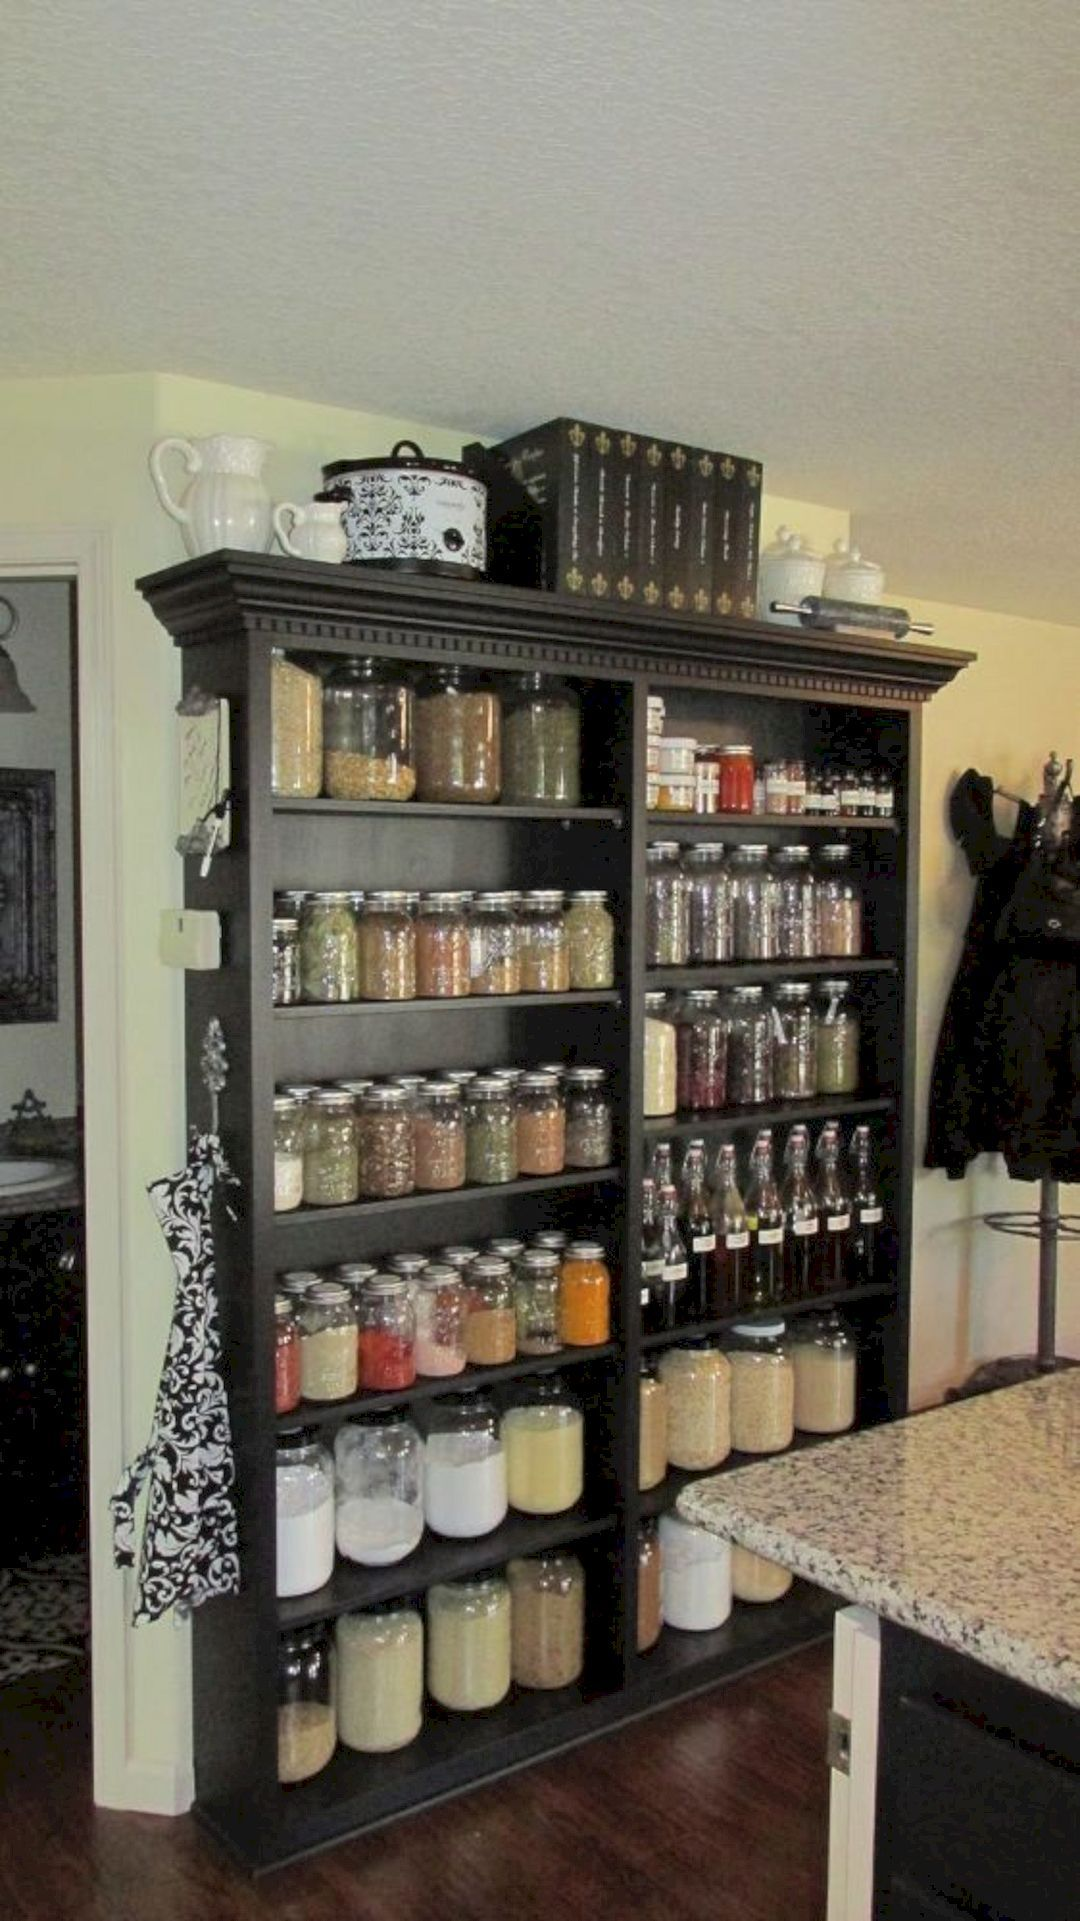 Astonishing Pantry Organization Ideas | Furniture Design Ideas ... on kitchen colors with white cabinets, bedroom ideas product, kitchen layouts with island, kitchen layout ideas product, pantry shelving product, galley kitchen ideas product, kitchen storage ideas,